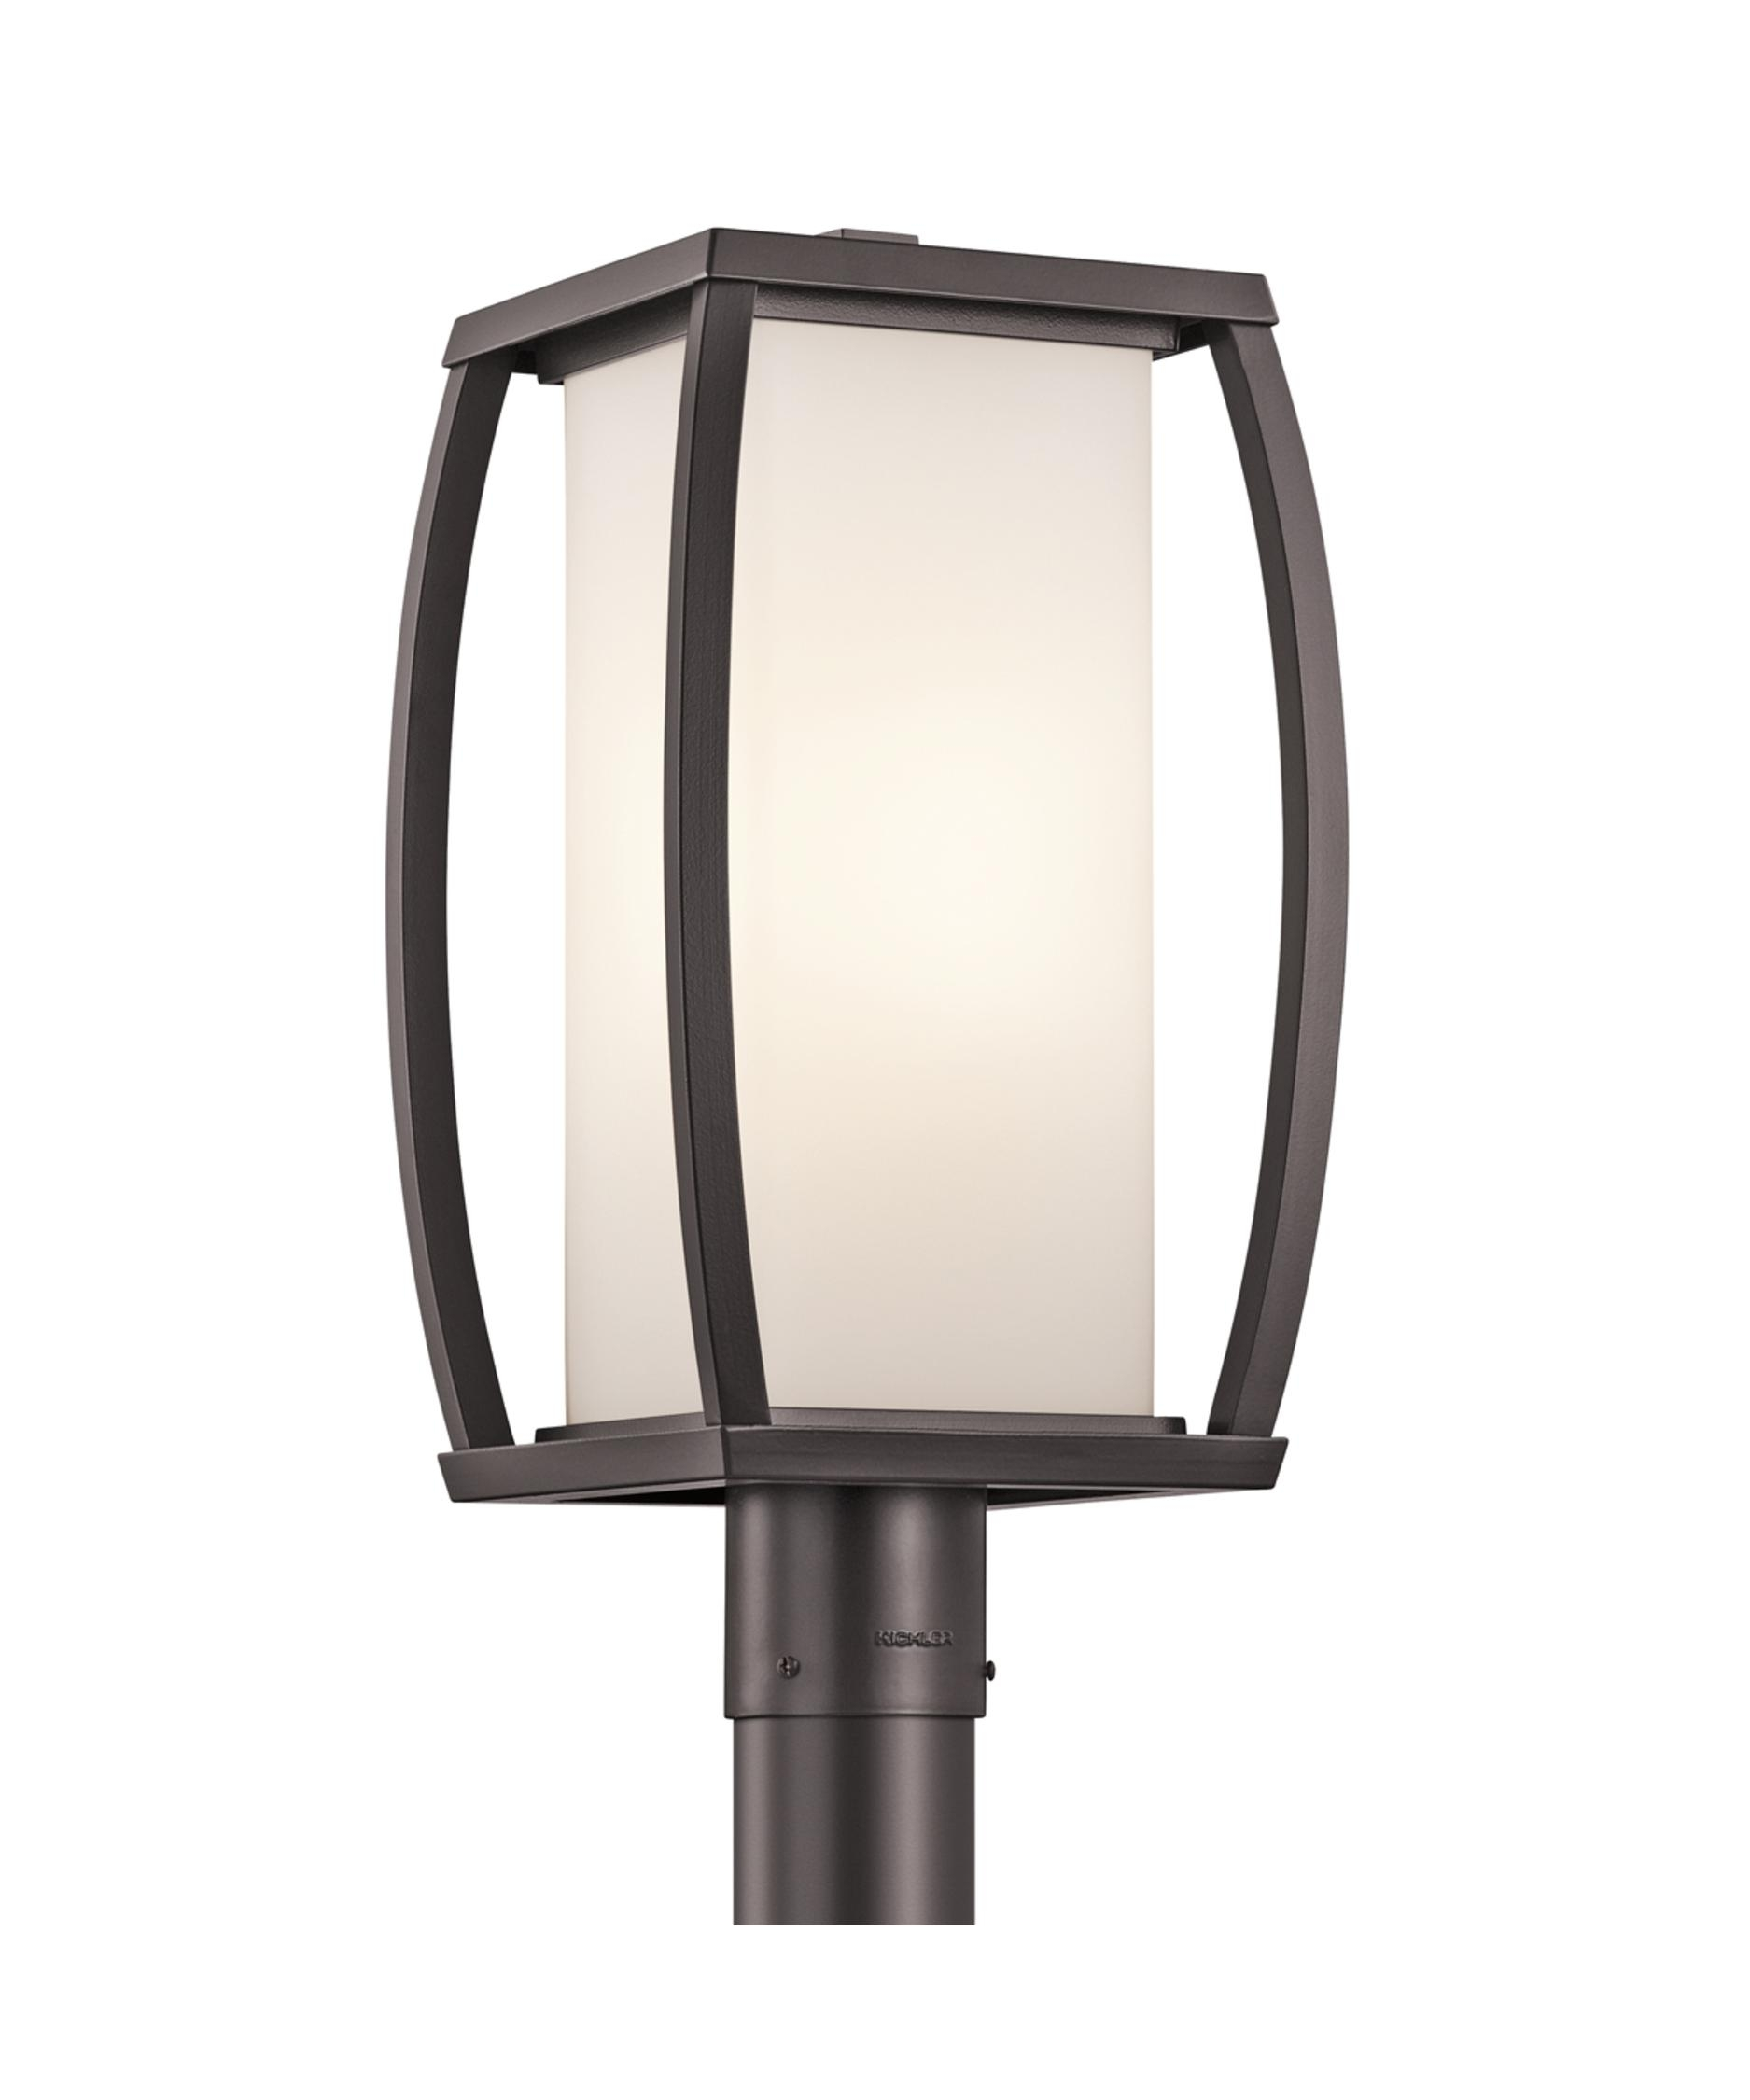 Kichler 49342 Bowen 9 Inch Wide 1 Light Outdoor Post Lamp | Capitol For Outdoor Post Lights Kichler Lighting (View 11 of 15)